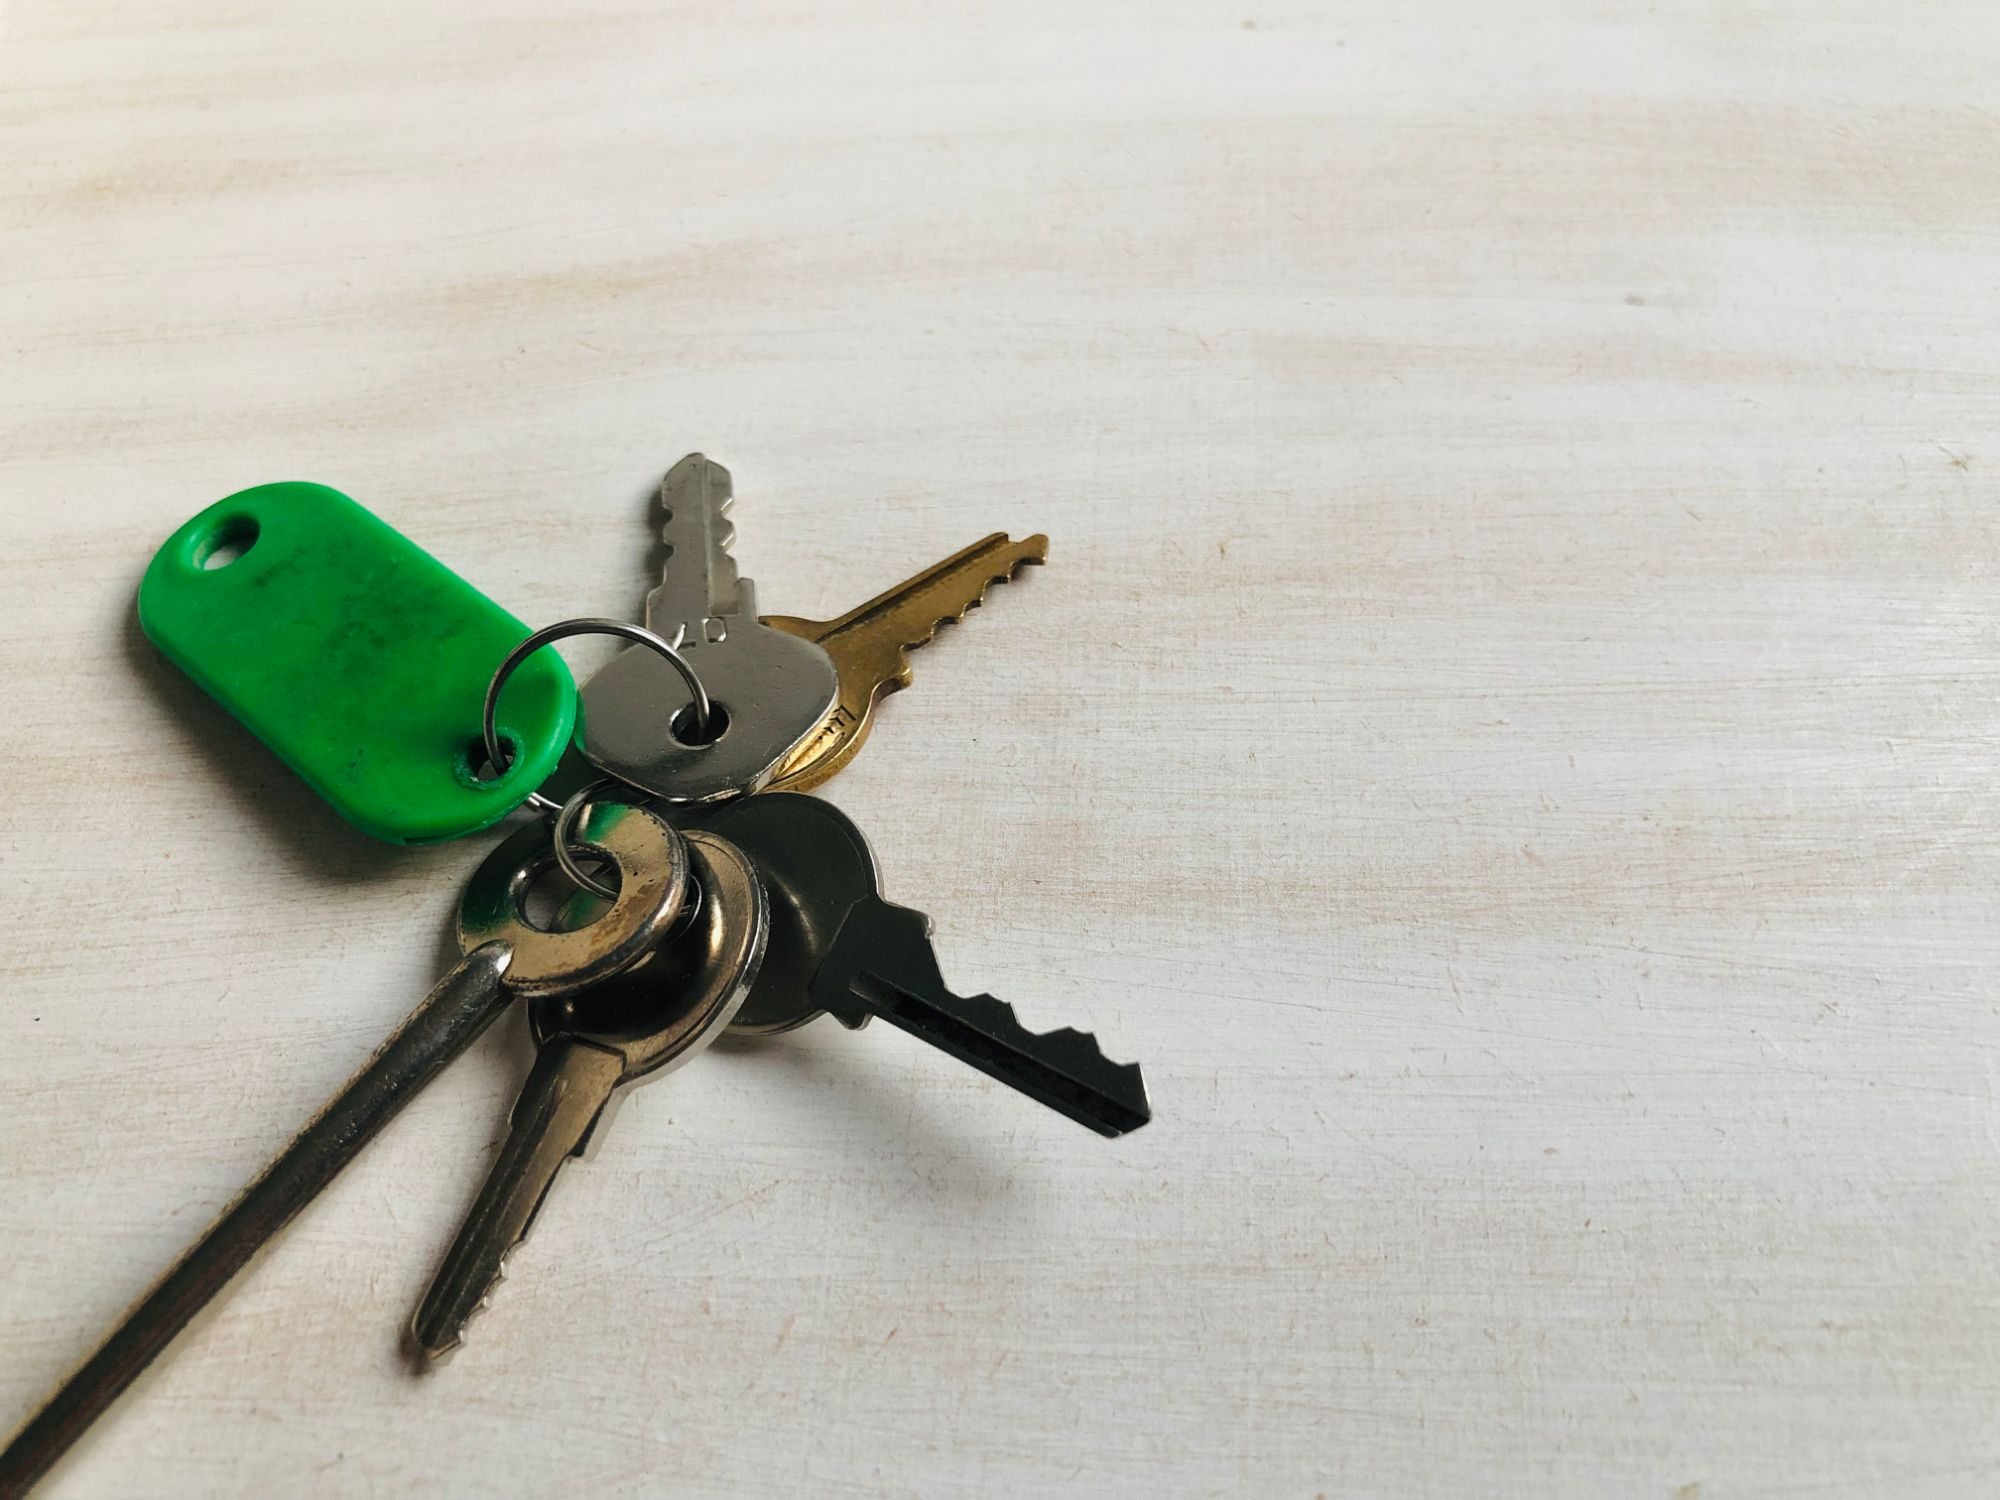 Free stock images money bloggers blog photos set of keys